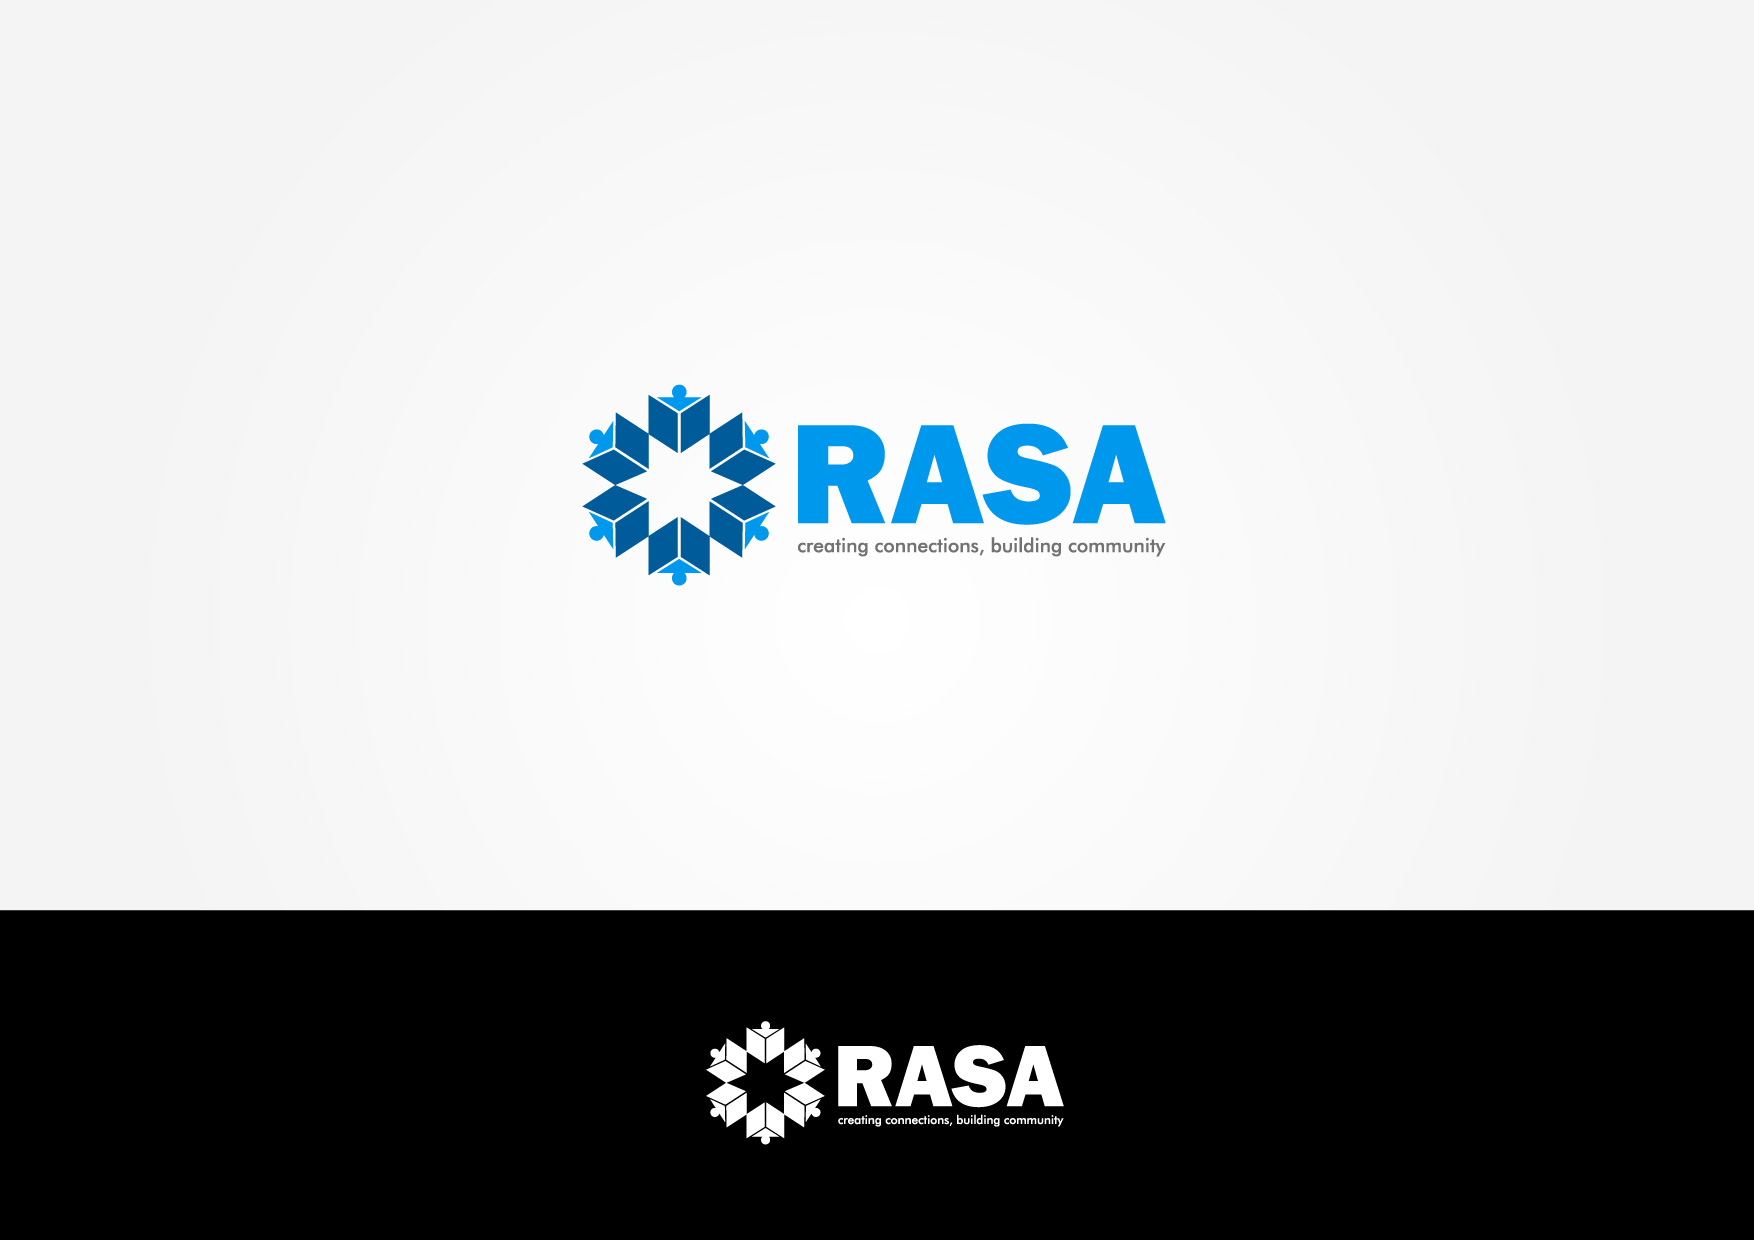 Logo Design by Osi Indra - Entry No. 8 in the Logo Design Contest New Logo Design for RASA - Richmond Association of School Administrato.